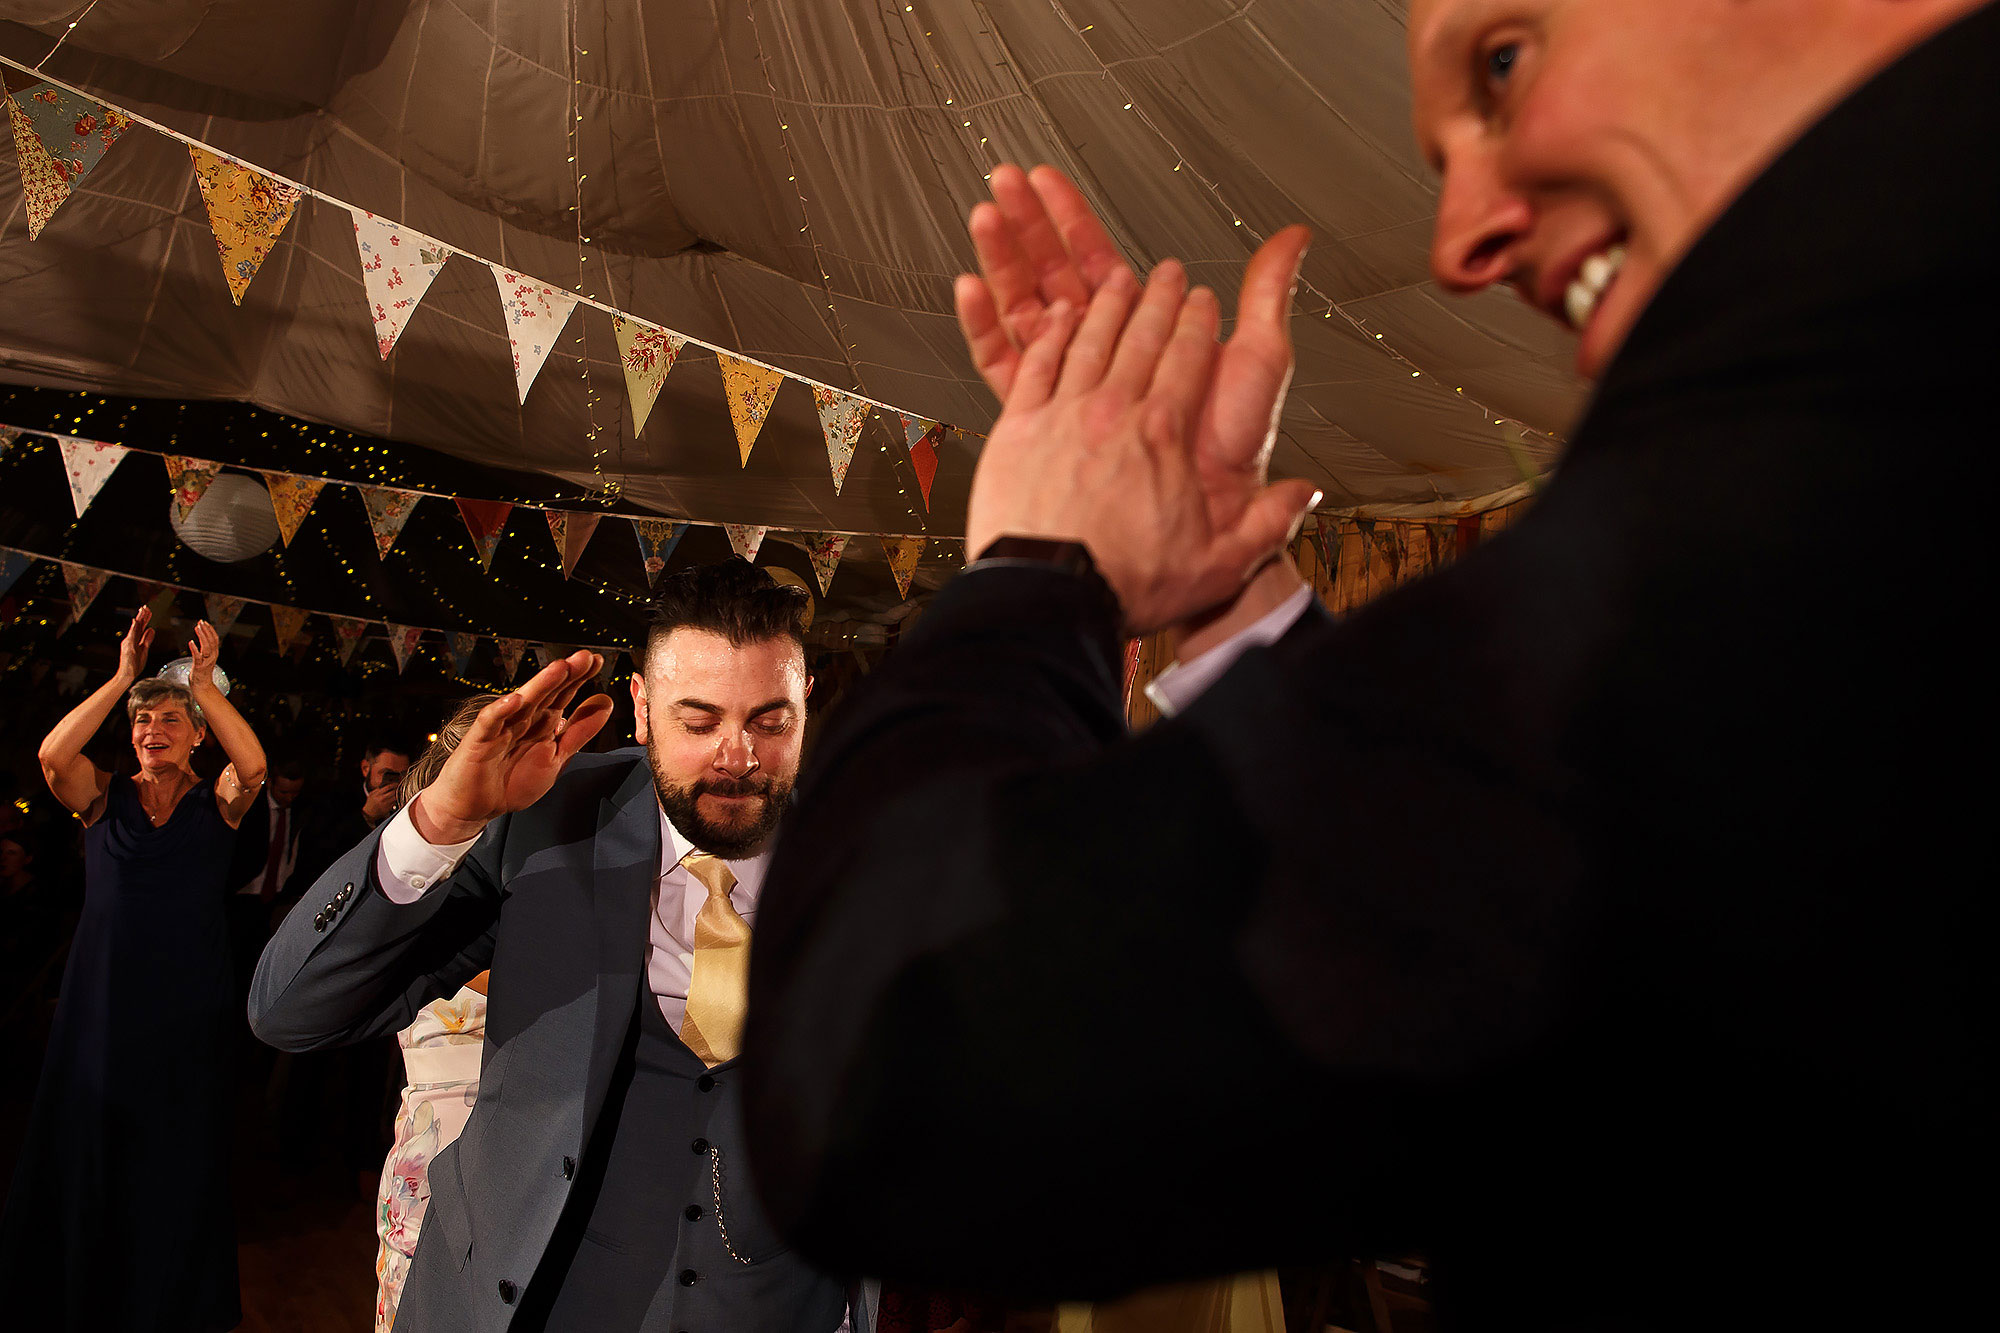 Wedding guests ceilidh dancing | Summer wedding at Wellbeing Farm - Toni Darcy Photography